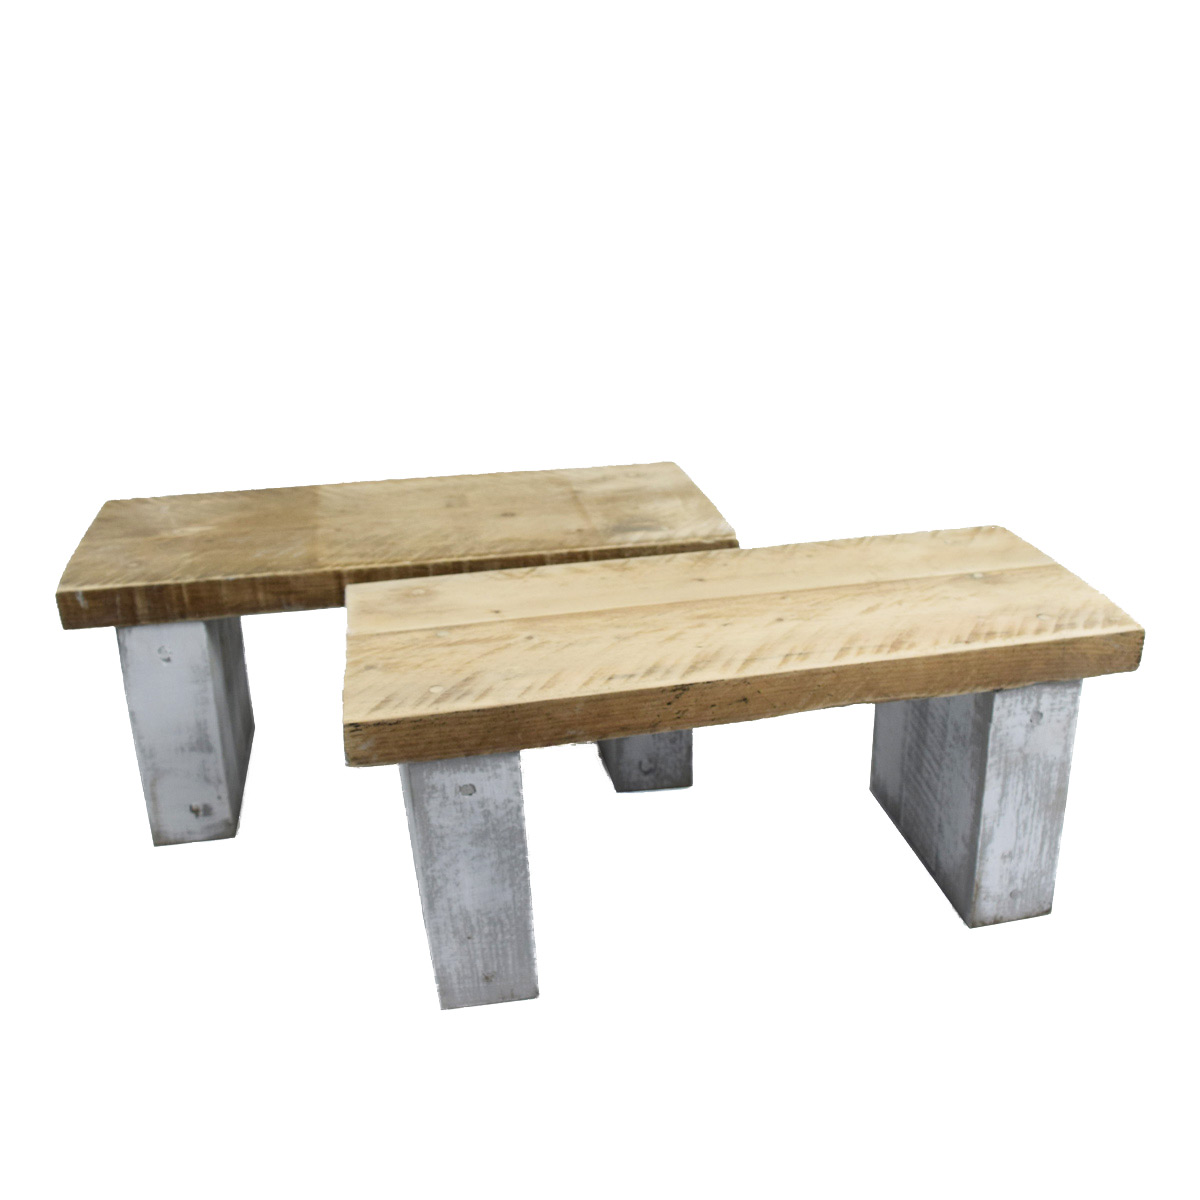 Reclaimed Rustic Wood Mini Coffee Table